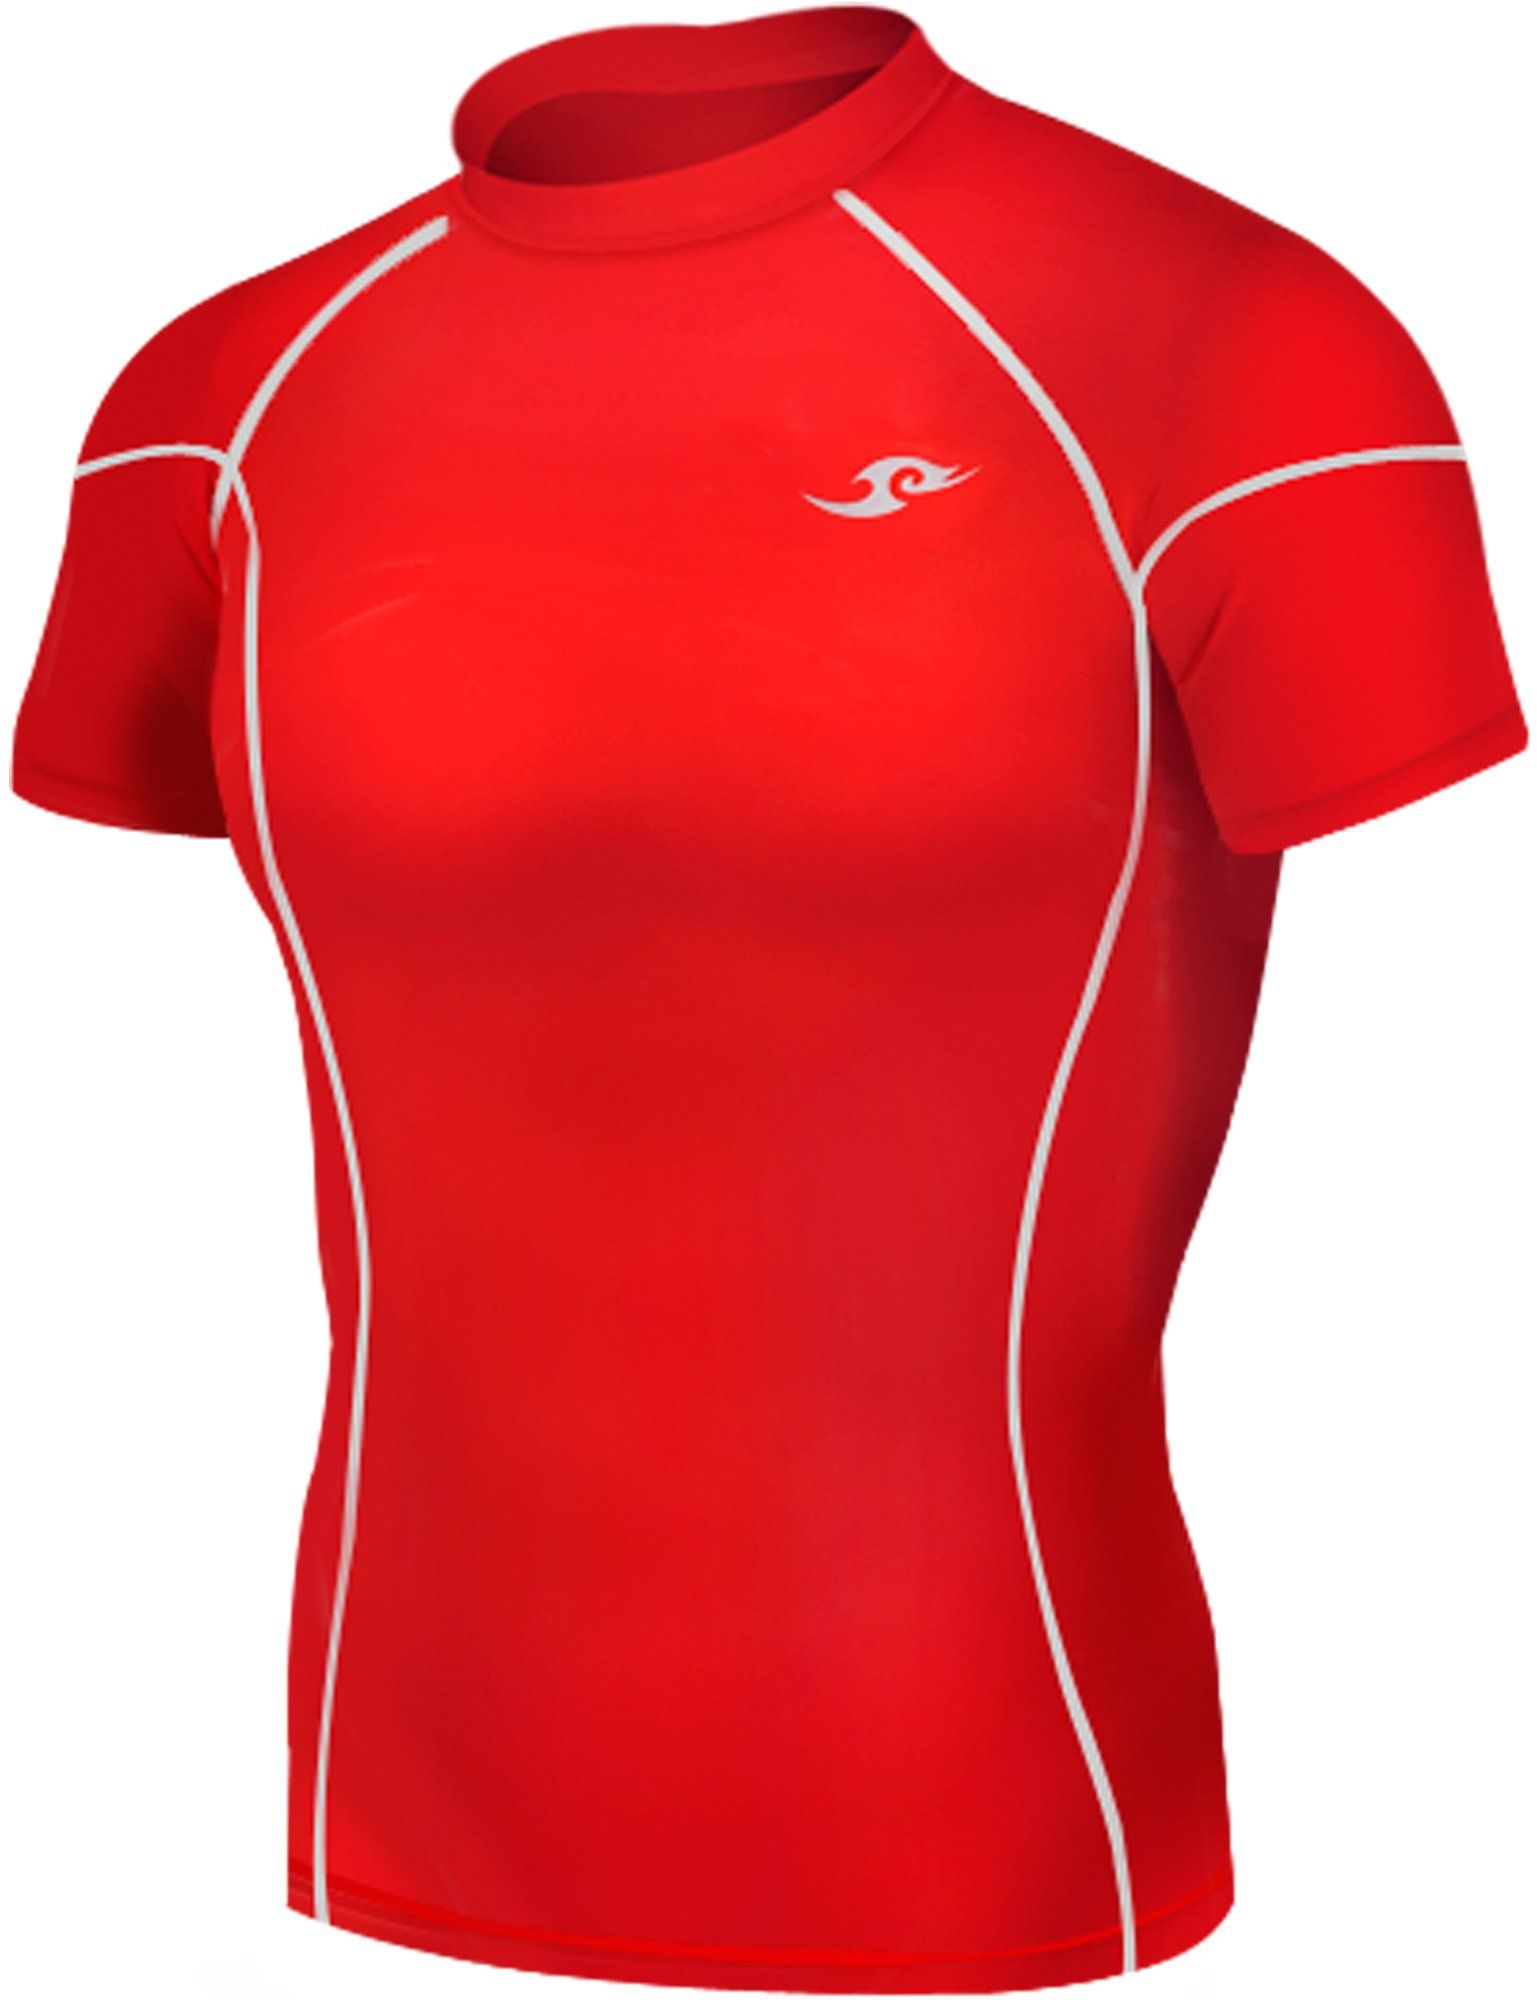 264fe24305 New Take Five Base Layer Mens Compression Skin Tights 036 Red Sports Top  (2XL)